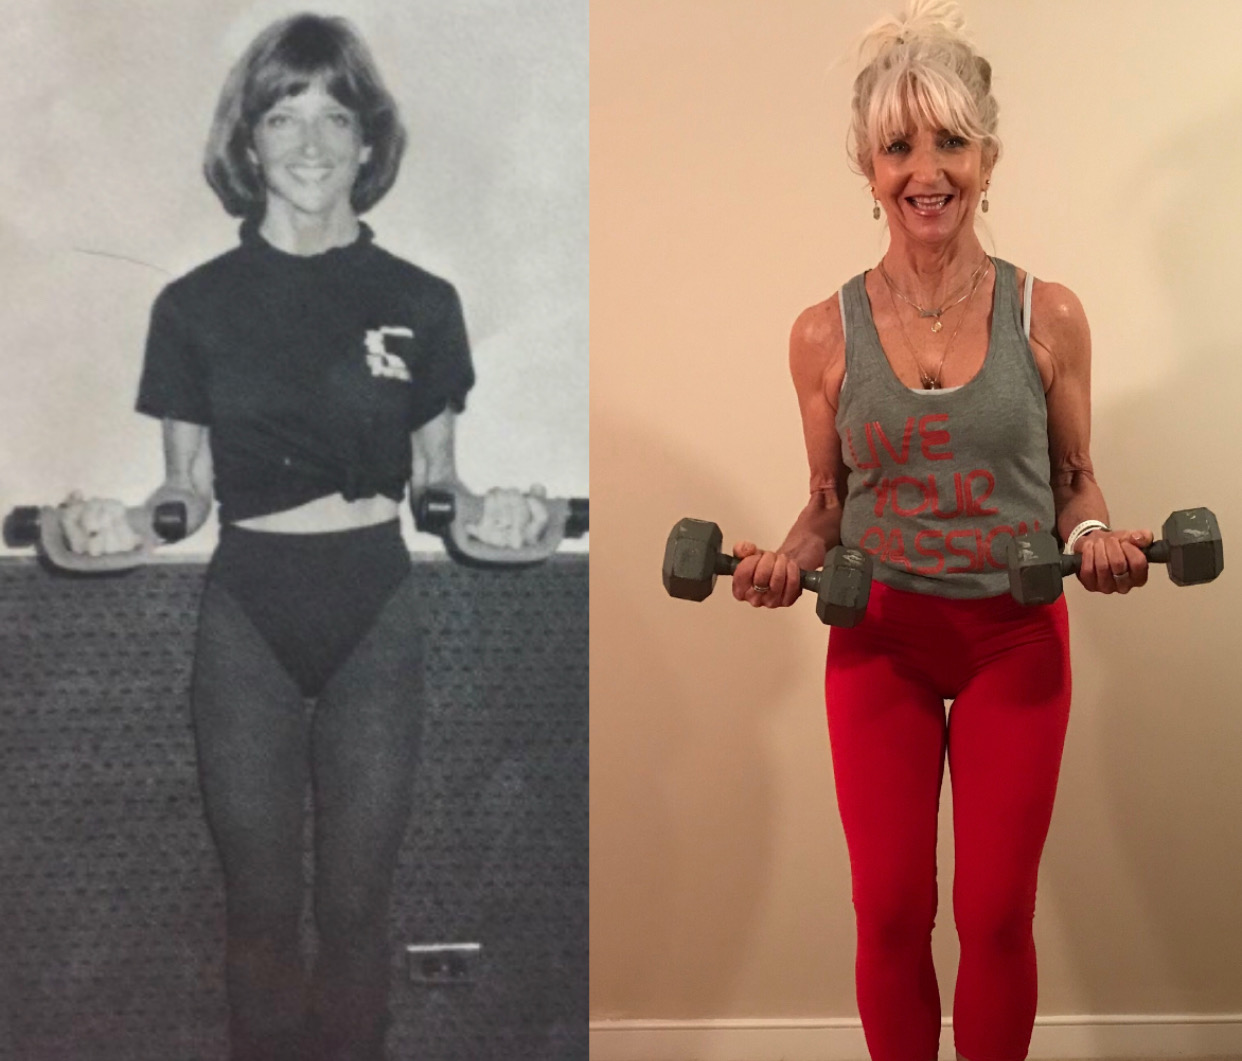 Left photo- Assistant Director/Fitness Coordinator Denver Tech Sporting Club, 1984  Right photo- Today, Health Coach, Personal Trainer and Weight Management Specialist running my own business since 2003